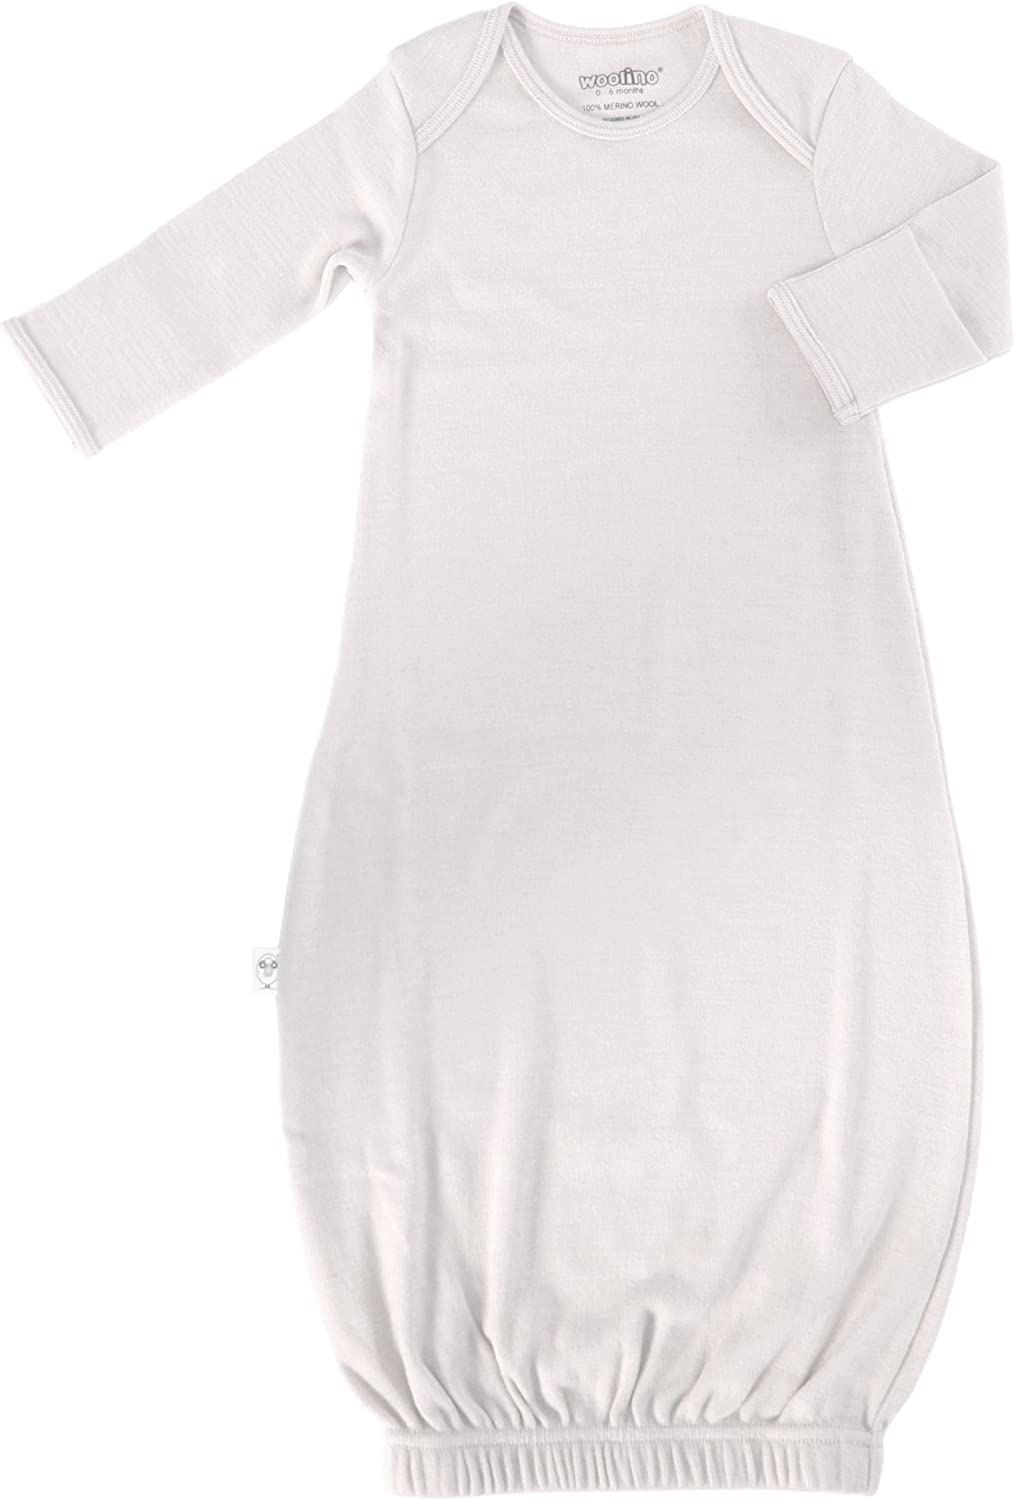 Woolino Baby Infant Gown Superfine Merino Wool 0-6 Months Beige